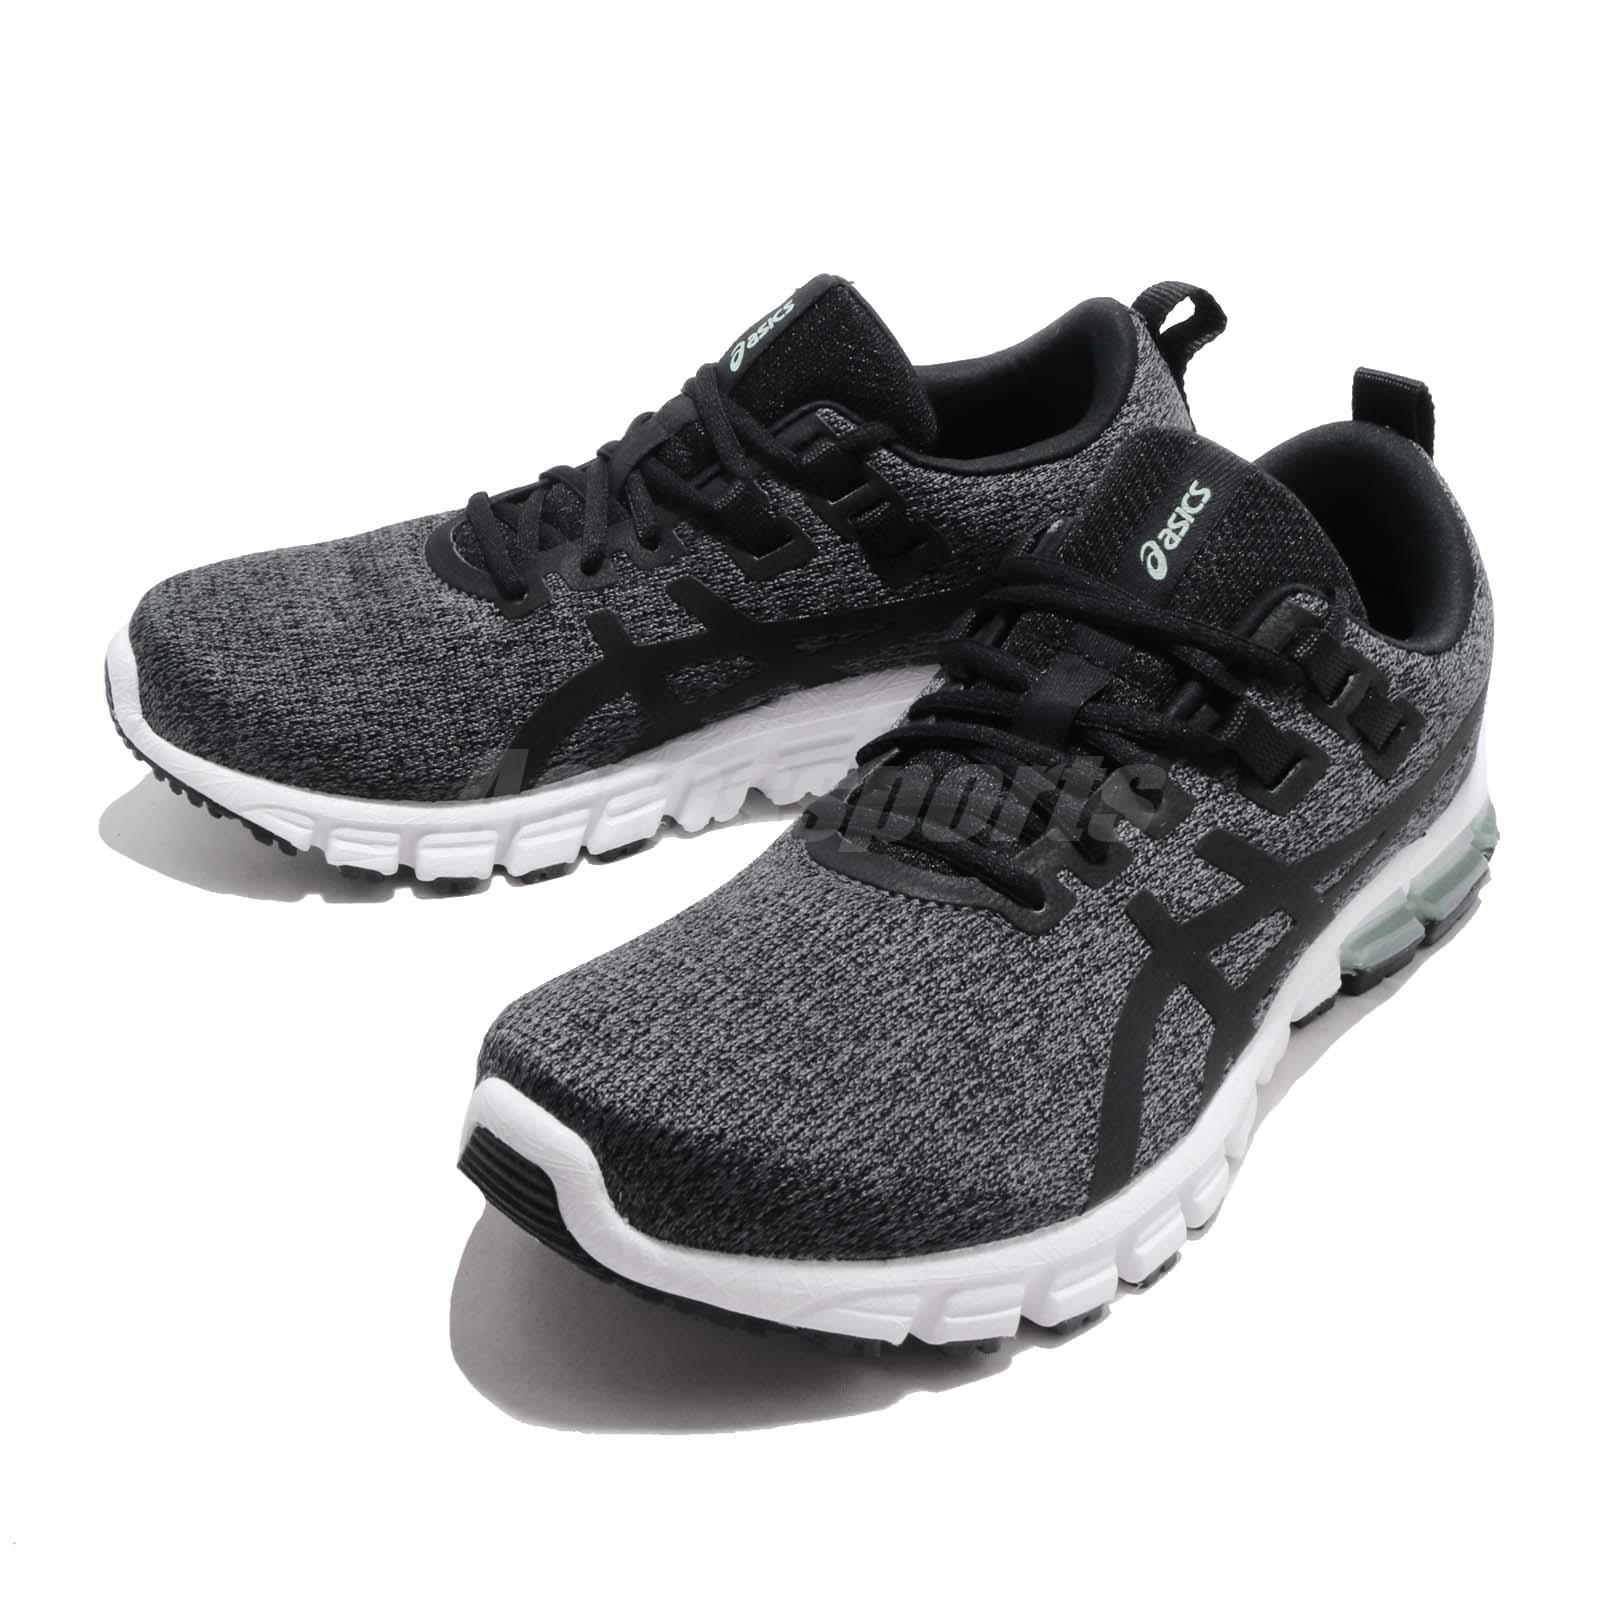 b856f679324214 Details about Asics Gel Quantum 90 Grey Black White Women Running Shoes  Sneakers 1022A115-021